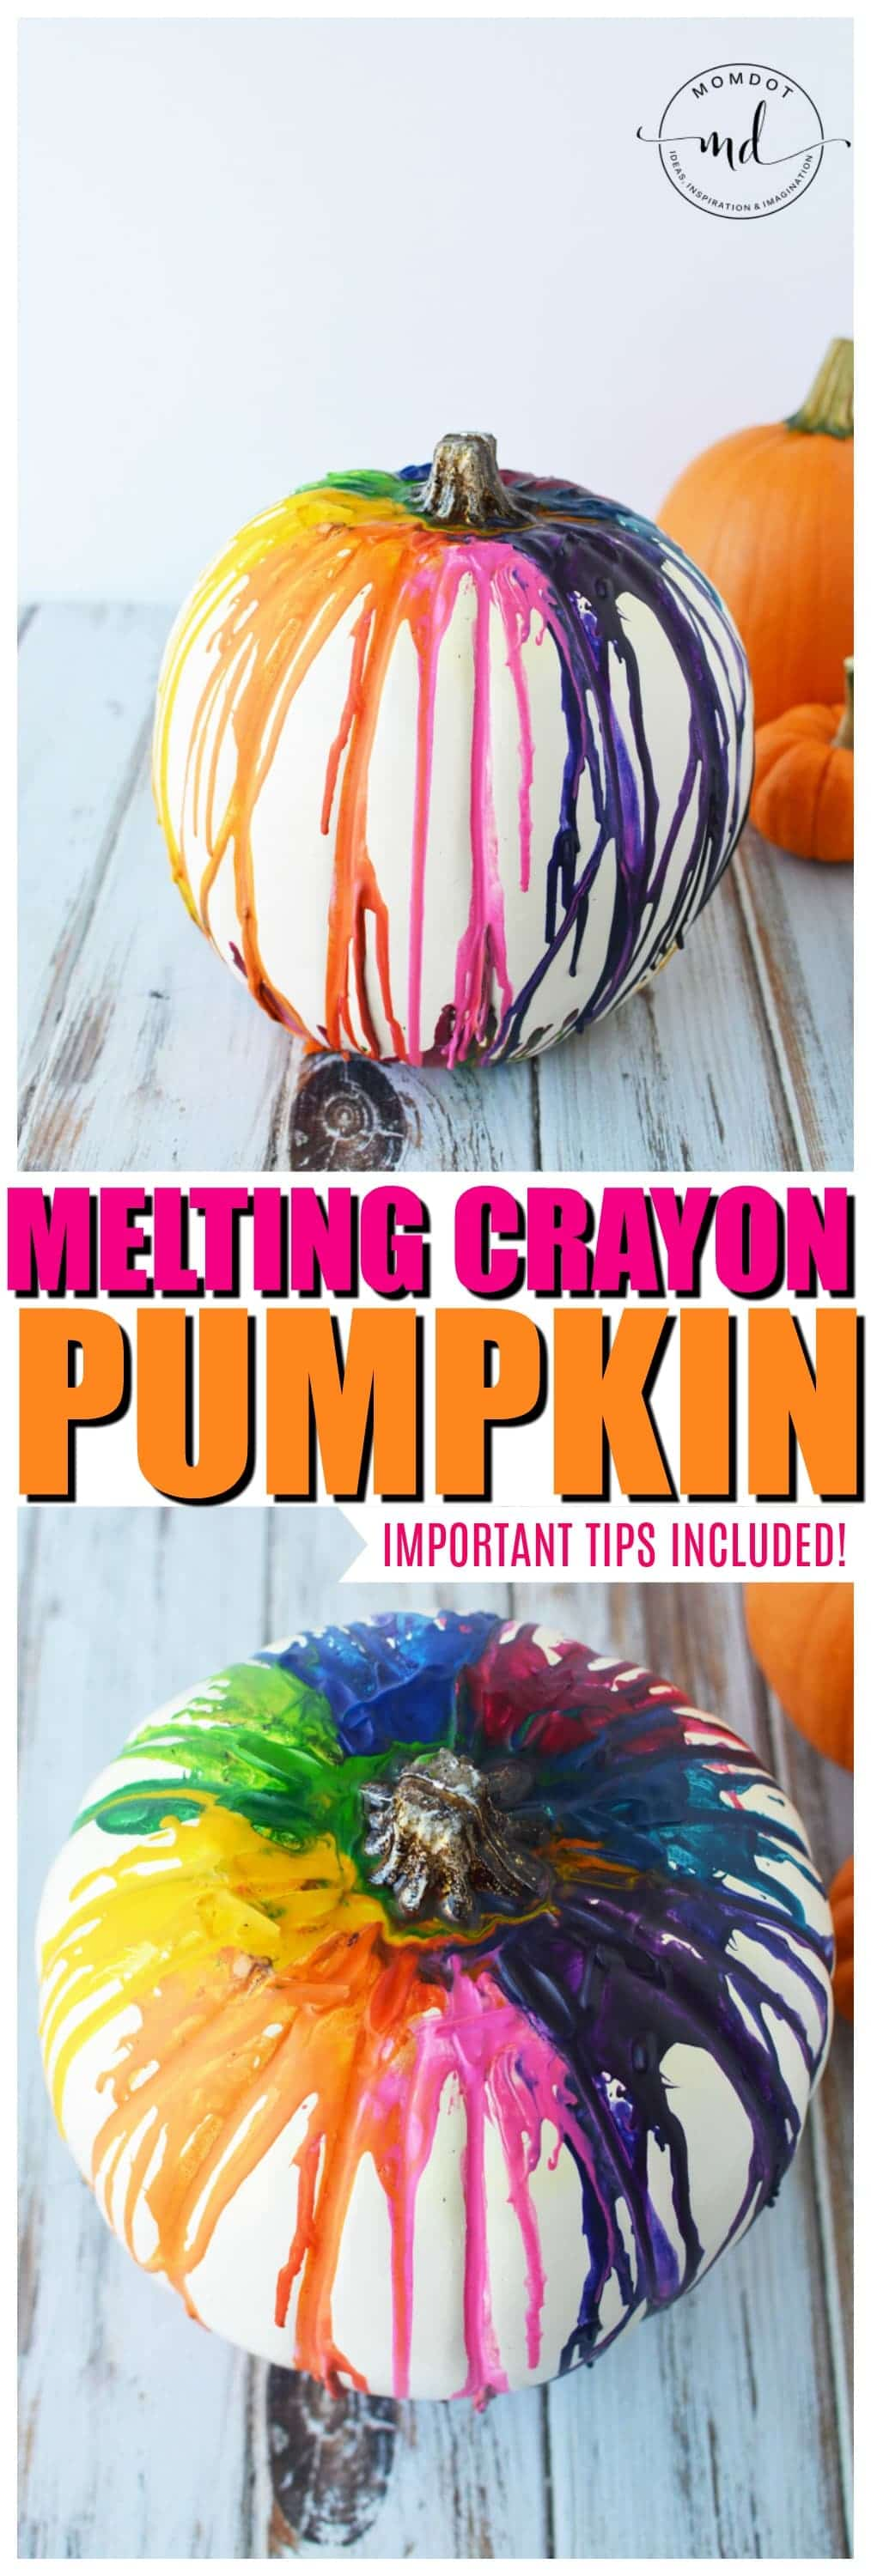 how to Melting Crayons Pumpkin Tutorial #pumpkins #halloween2017 #halloween #crayons #kidscrafts #halloweenpumpkin #DIY #howto #tutorial #tips